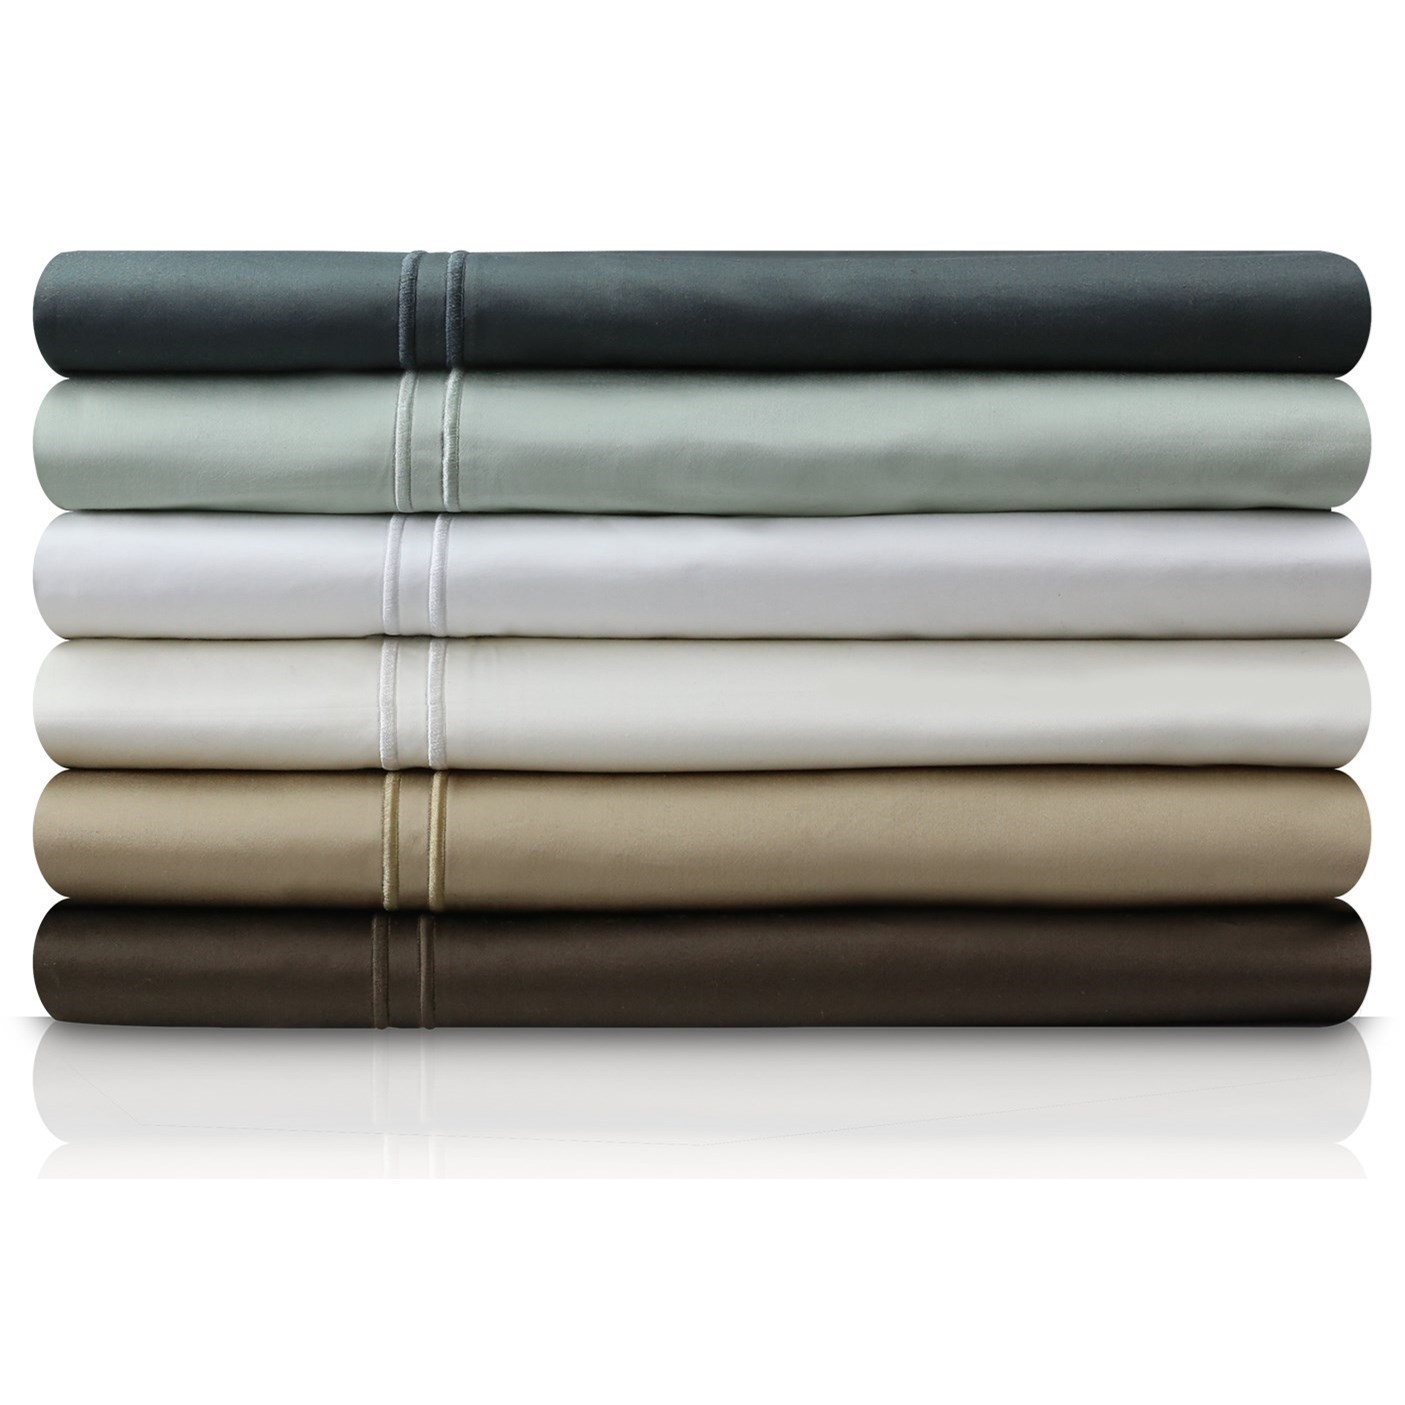 Malouf Egyptian Cotton Split Queen 600 TC Egyptian Cotton Sheet Set - Item Number: MA06SQWHSS